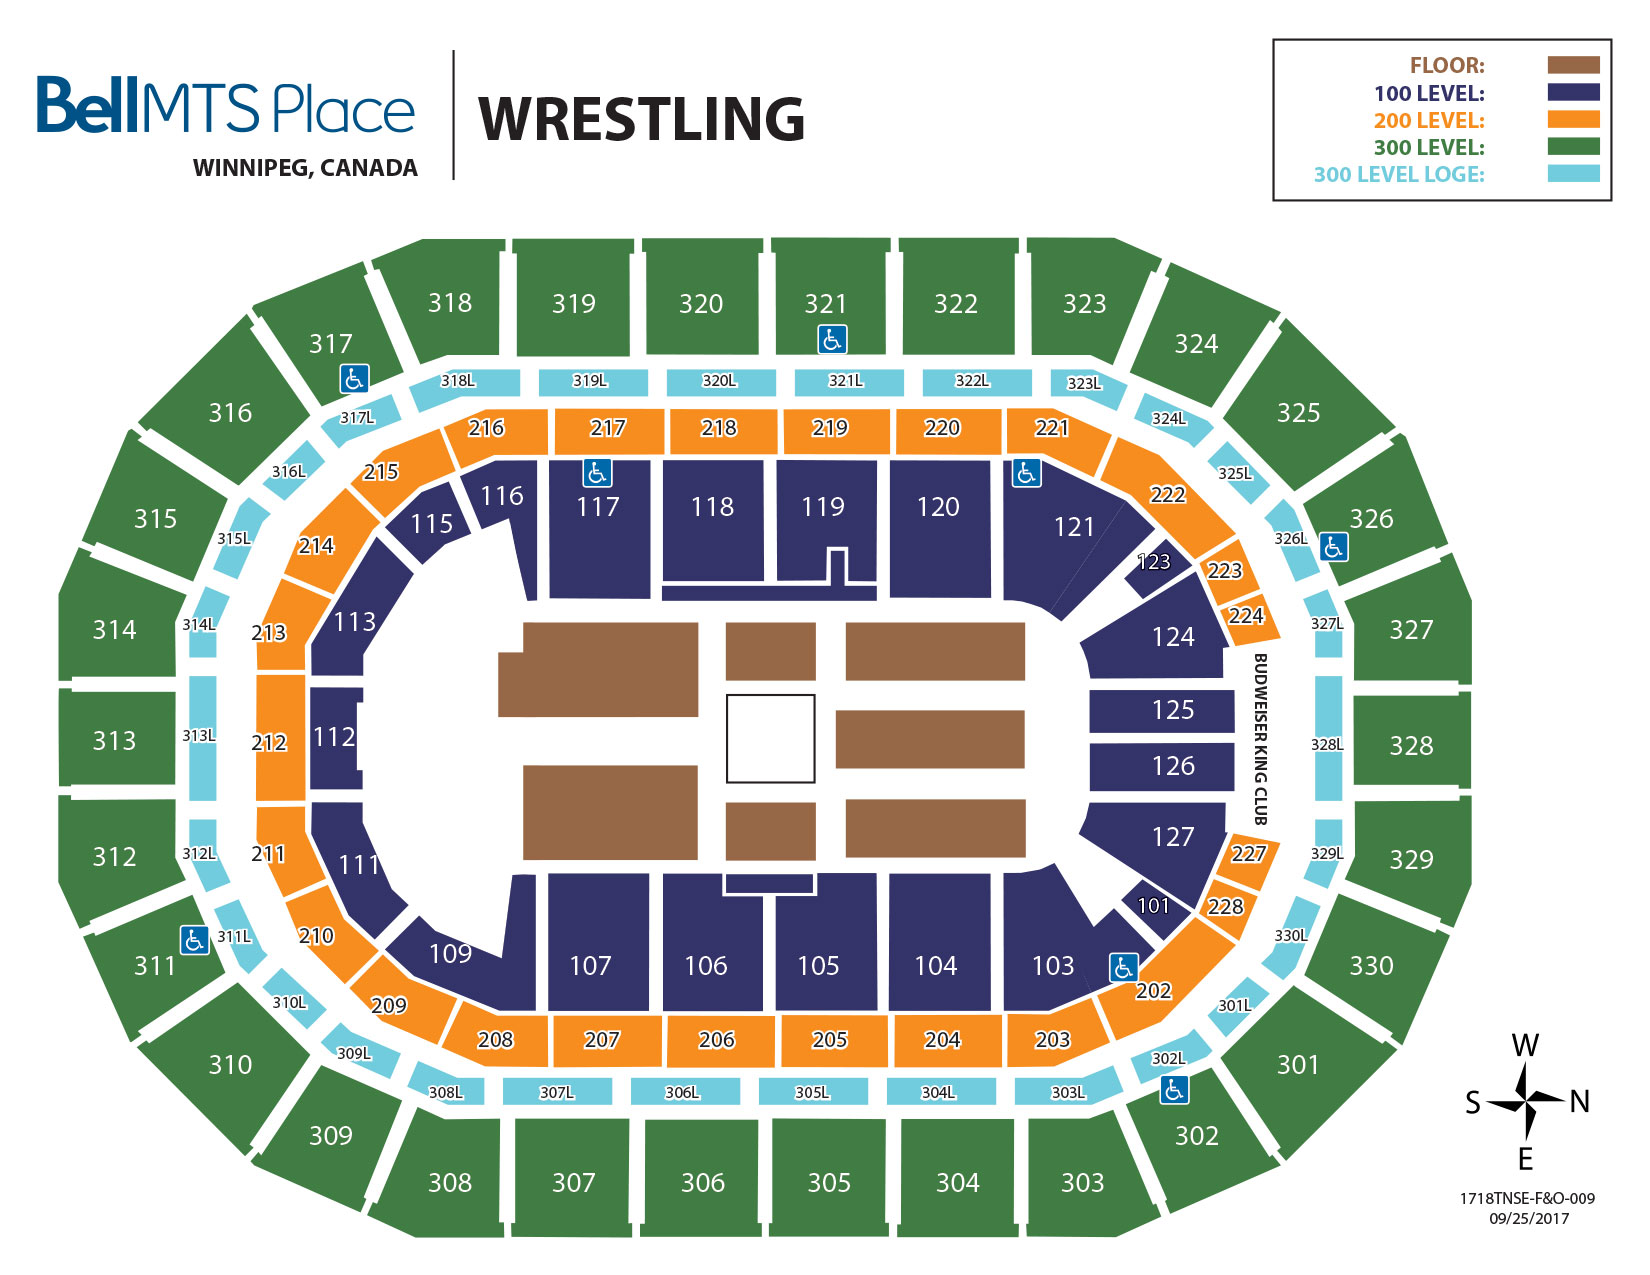 Bell MTS Place - Wrestling Seating